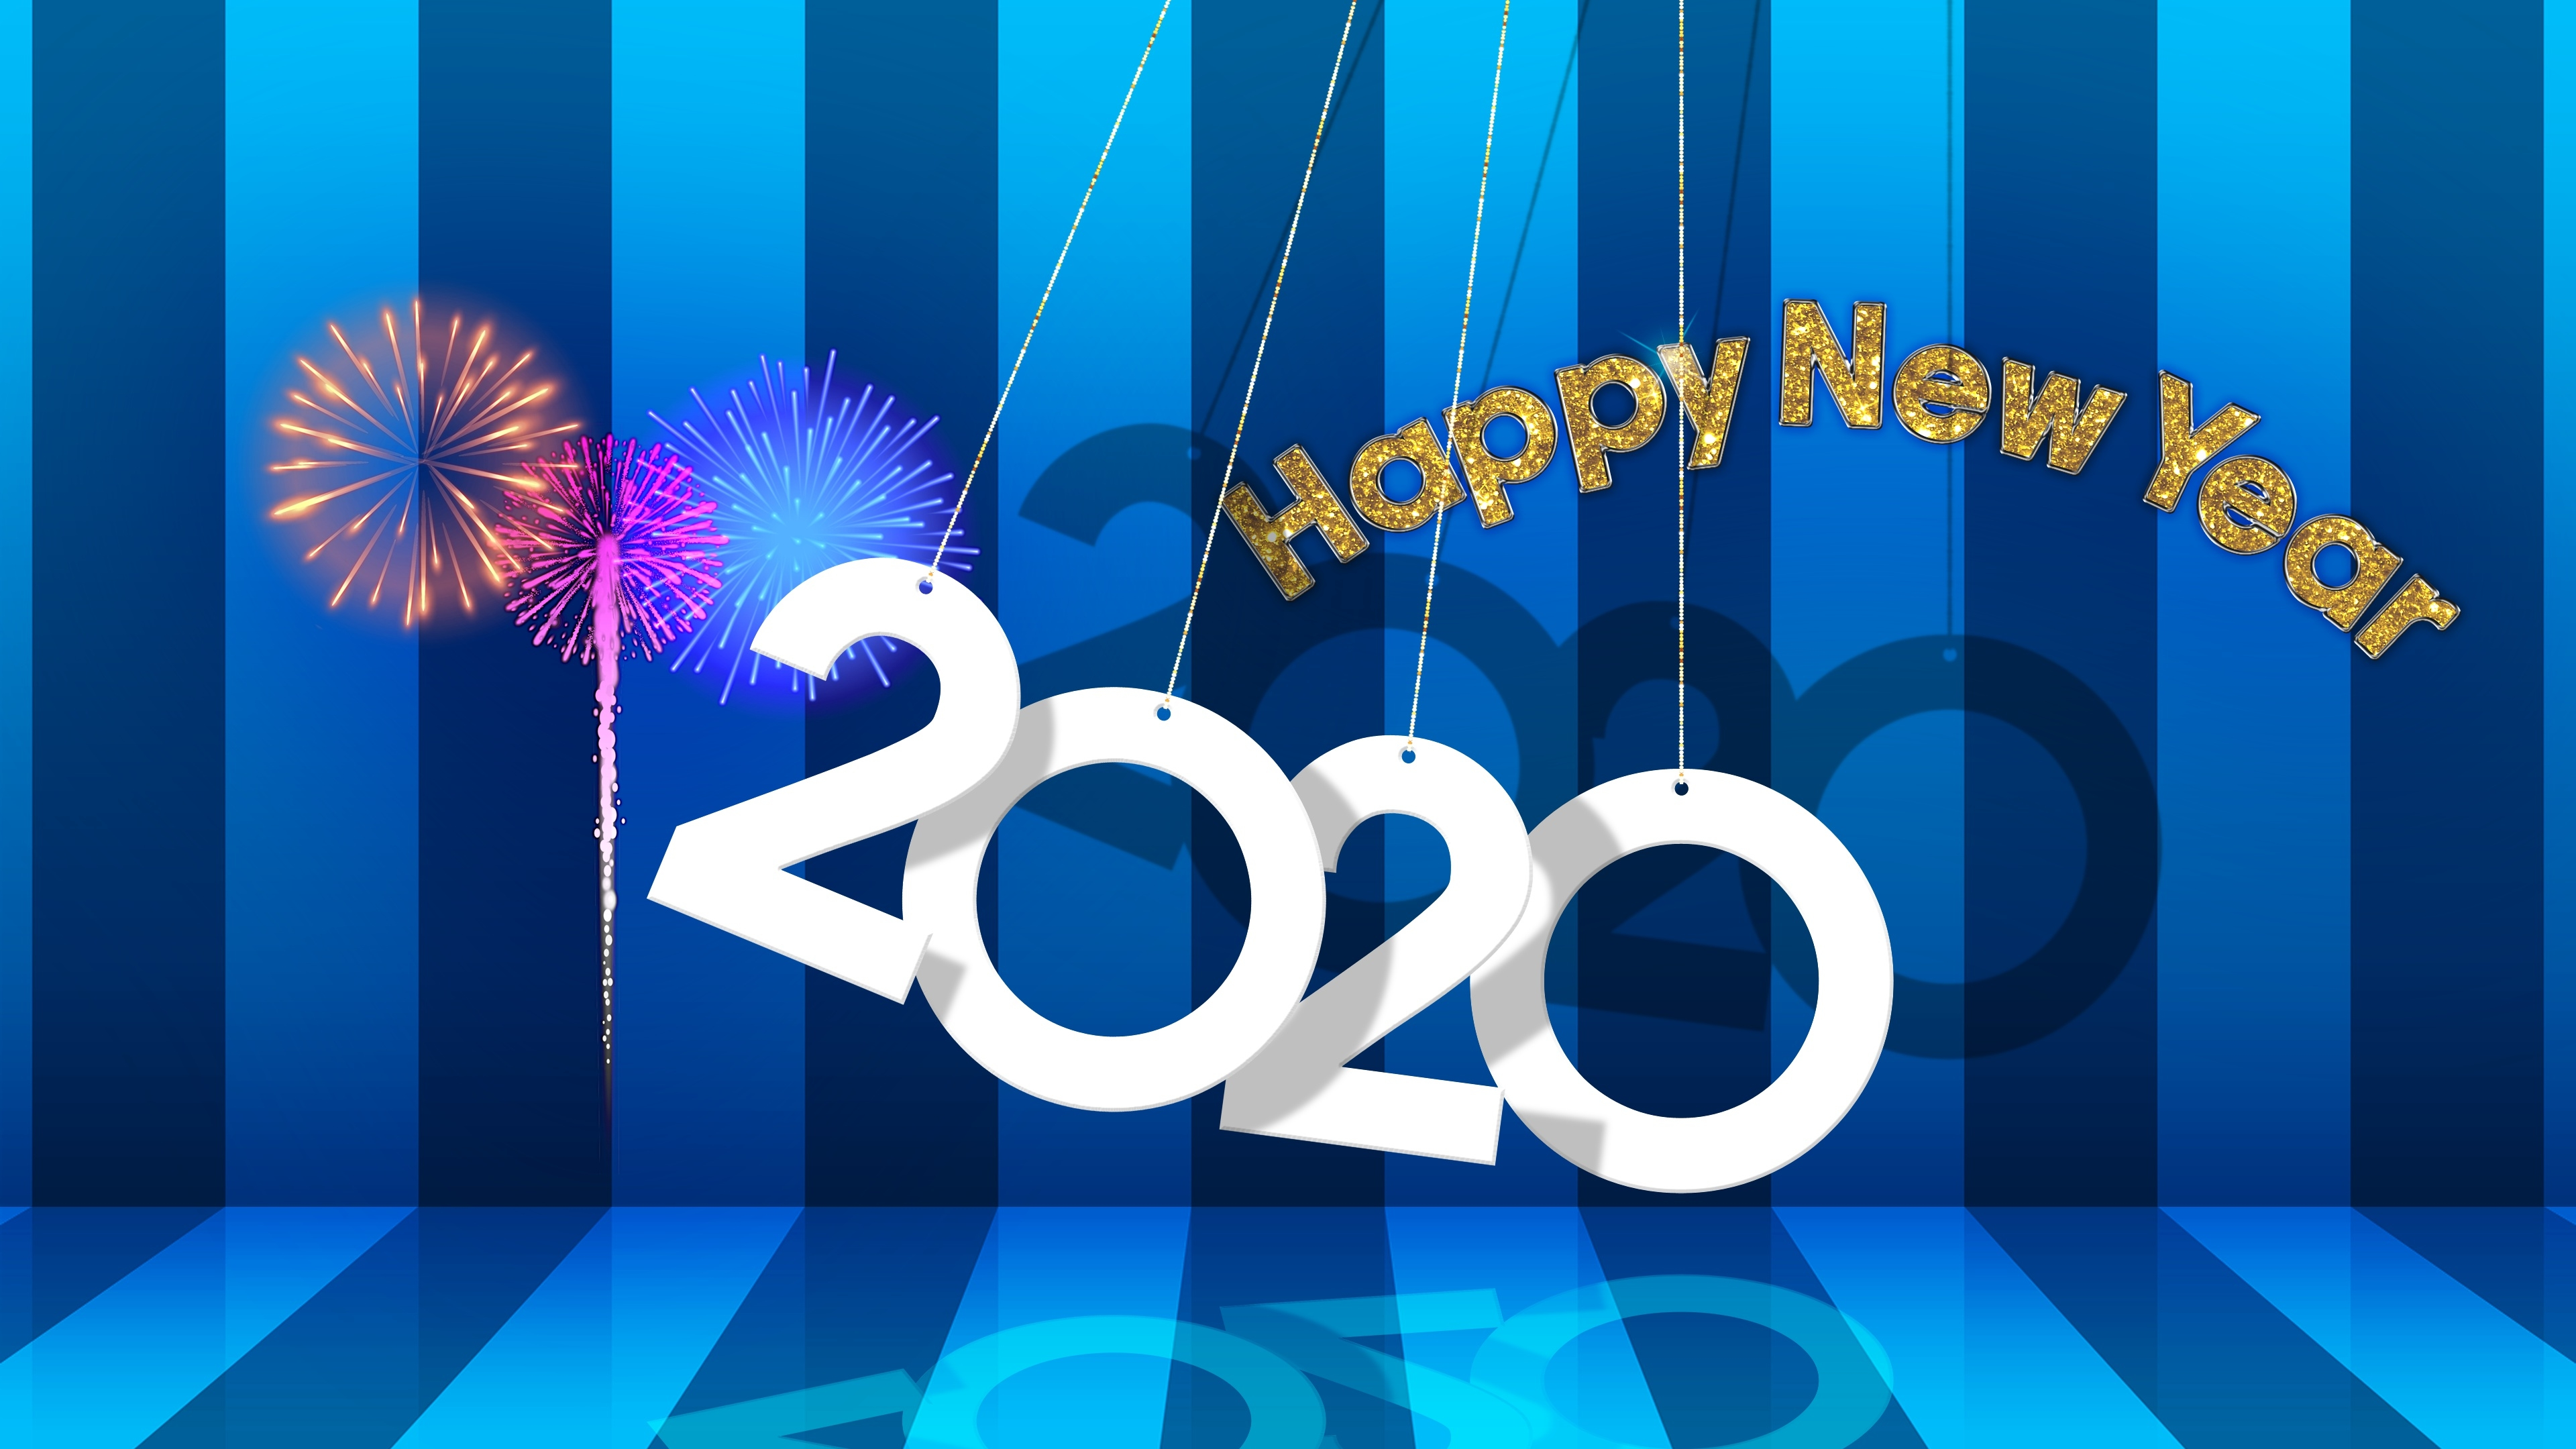 download New Year 2020 Wallpaper HD Other 4K Wallpapers 3840x2160